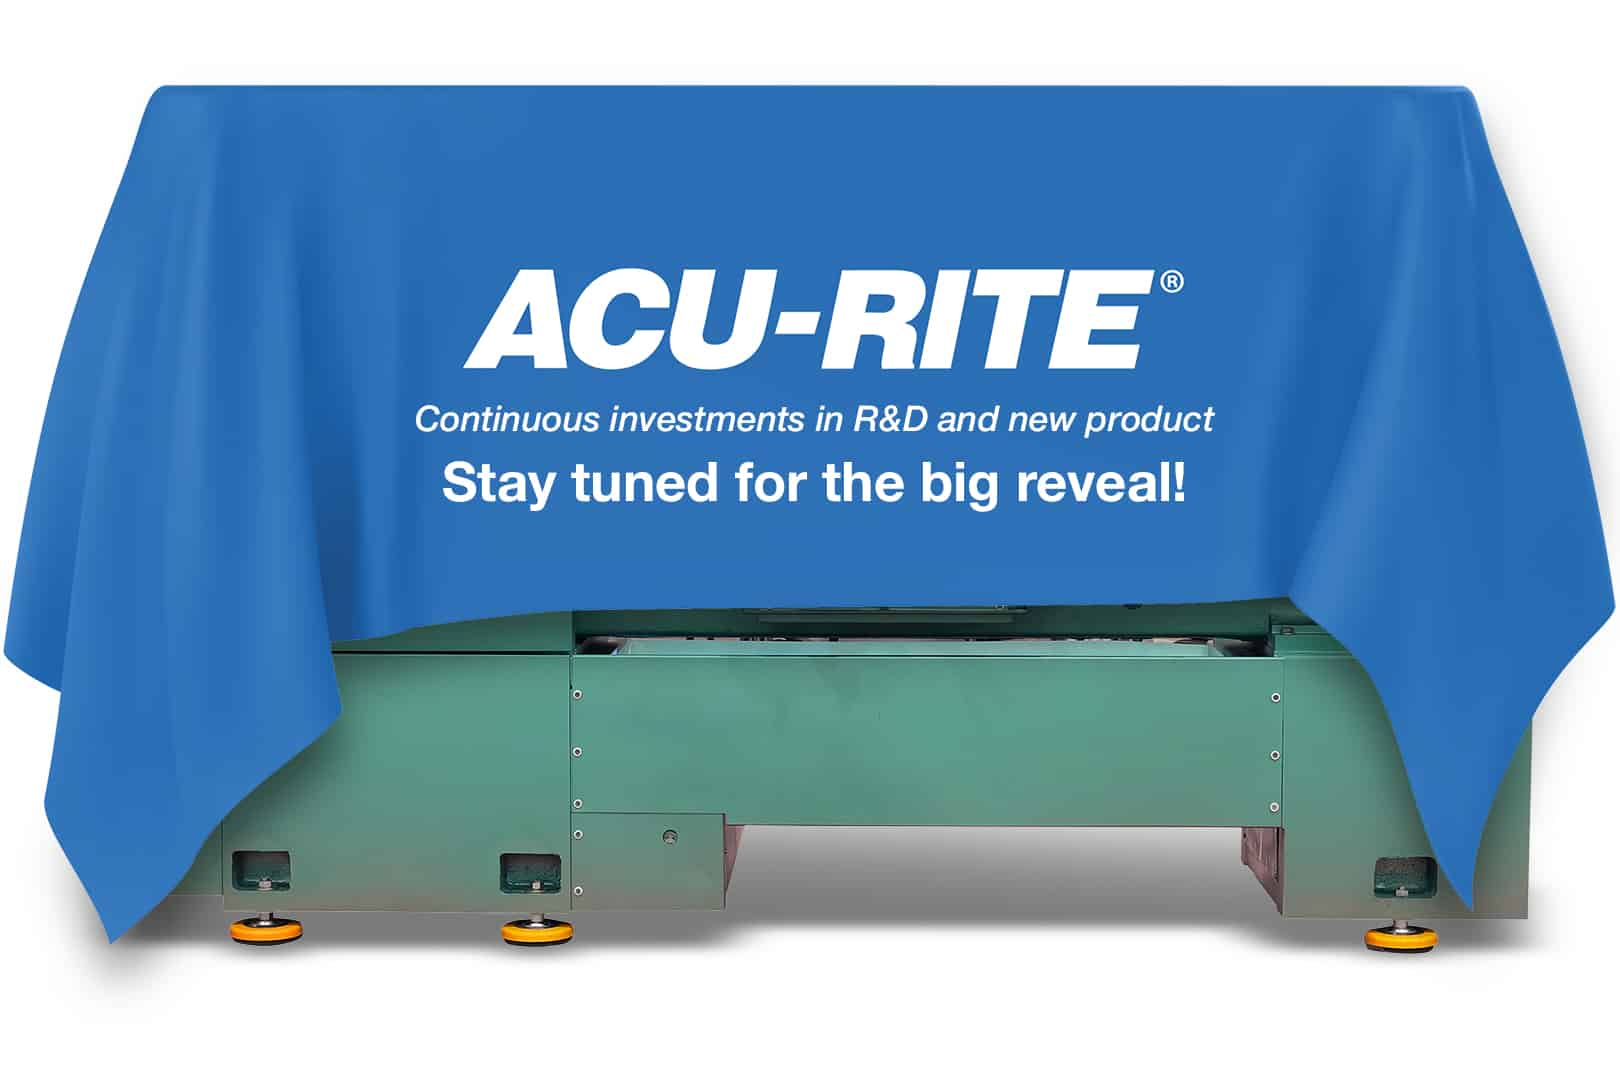 ACU-RITE cloth over lathe 2 with taglines - 1620px X 1080px